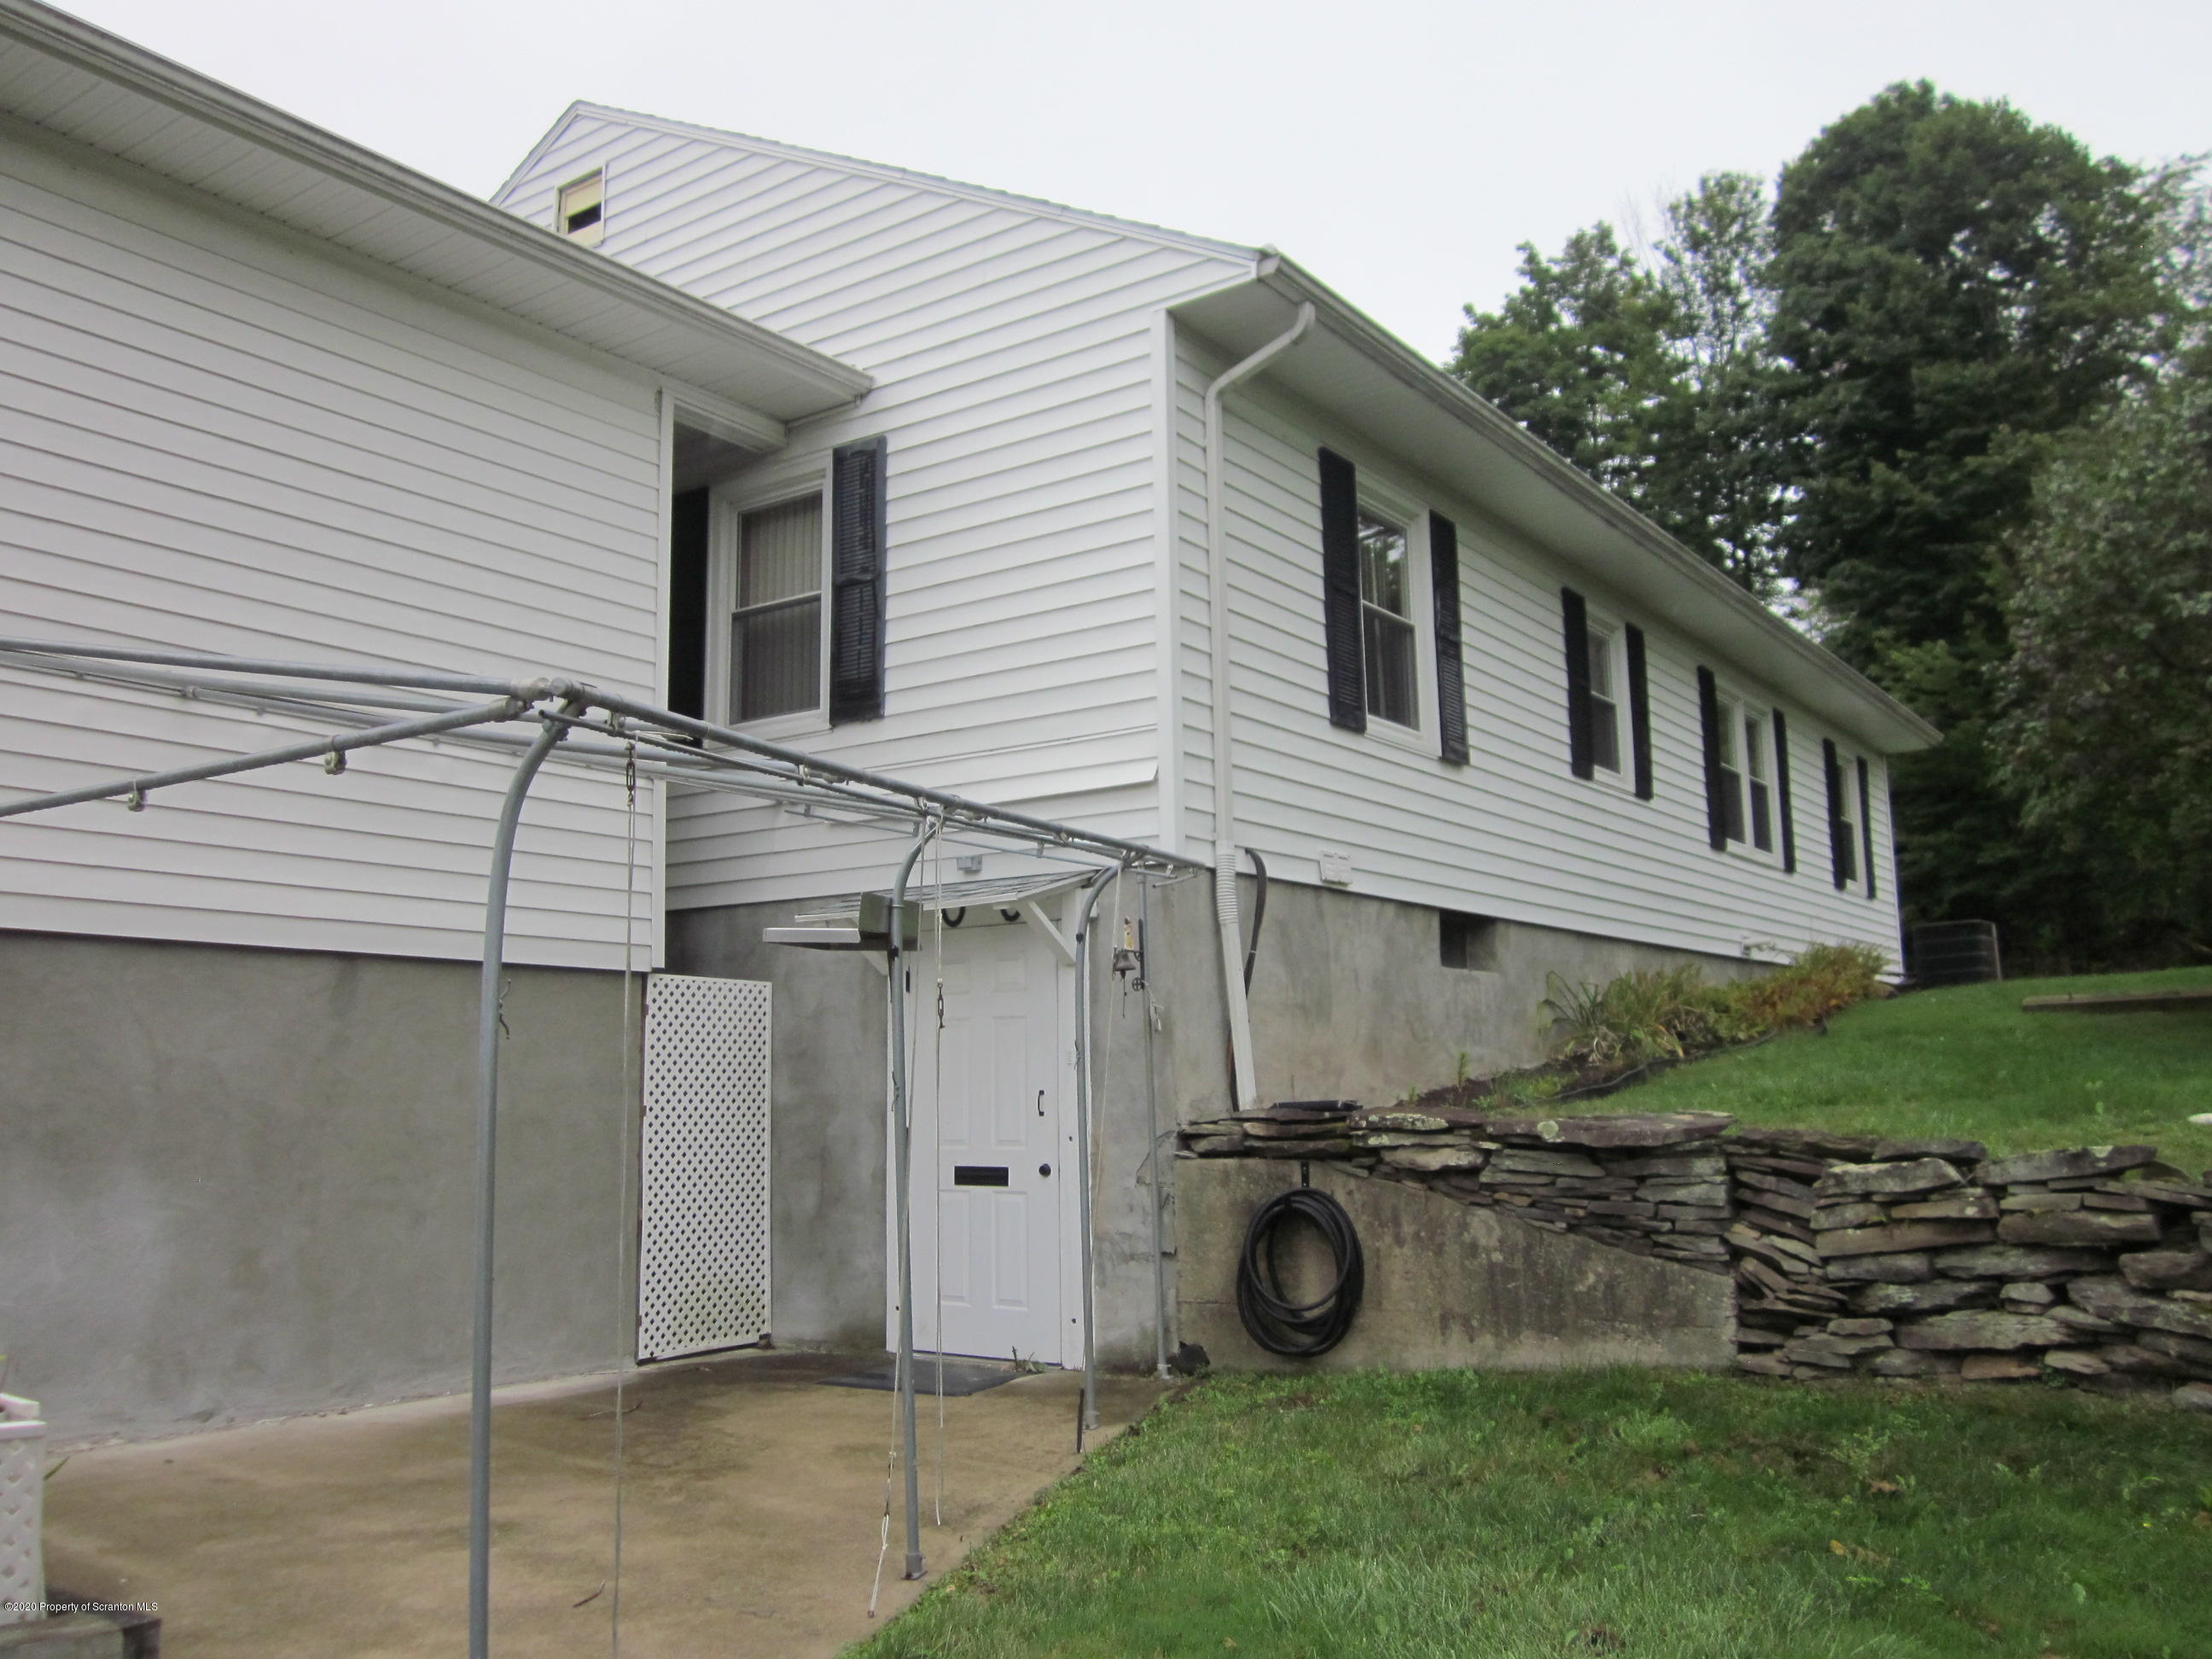 1003 Sunset, Clarks Summit, Pennsylvania 18411, 2 Bedrooms Bedrooms, 5 Rooms Rooms,1 BathroomBathrooms,Single Family,For Sale,Sunset,20-3717